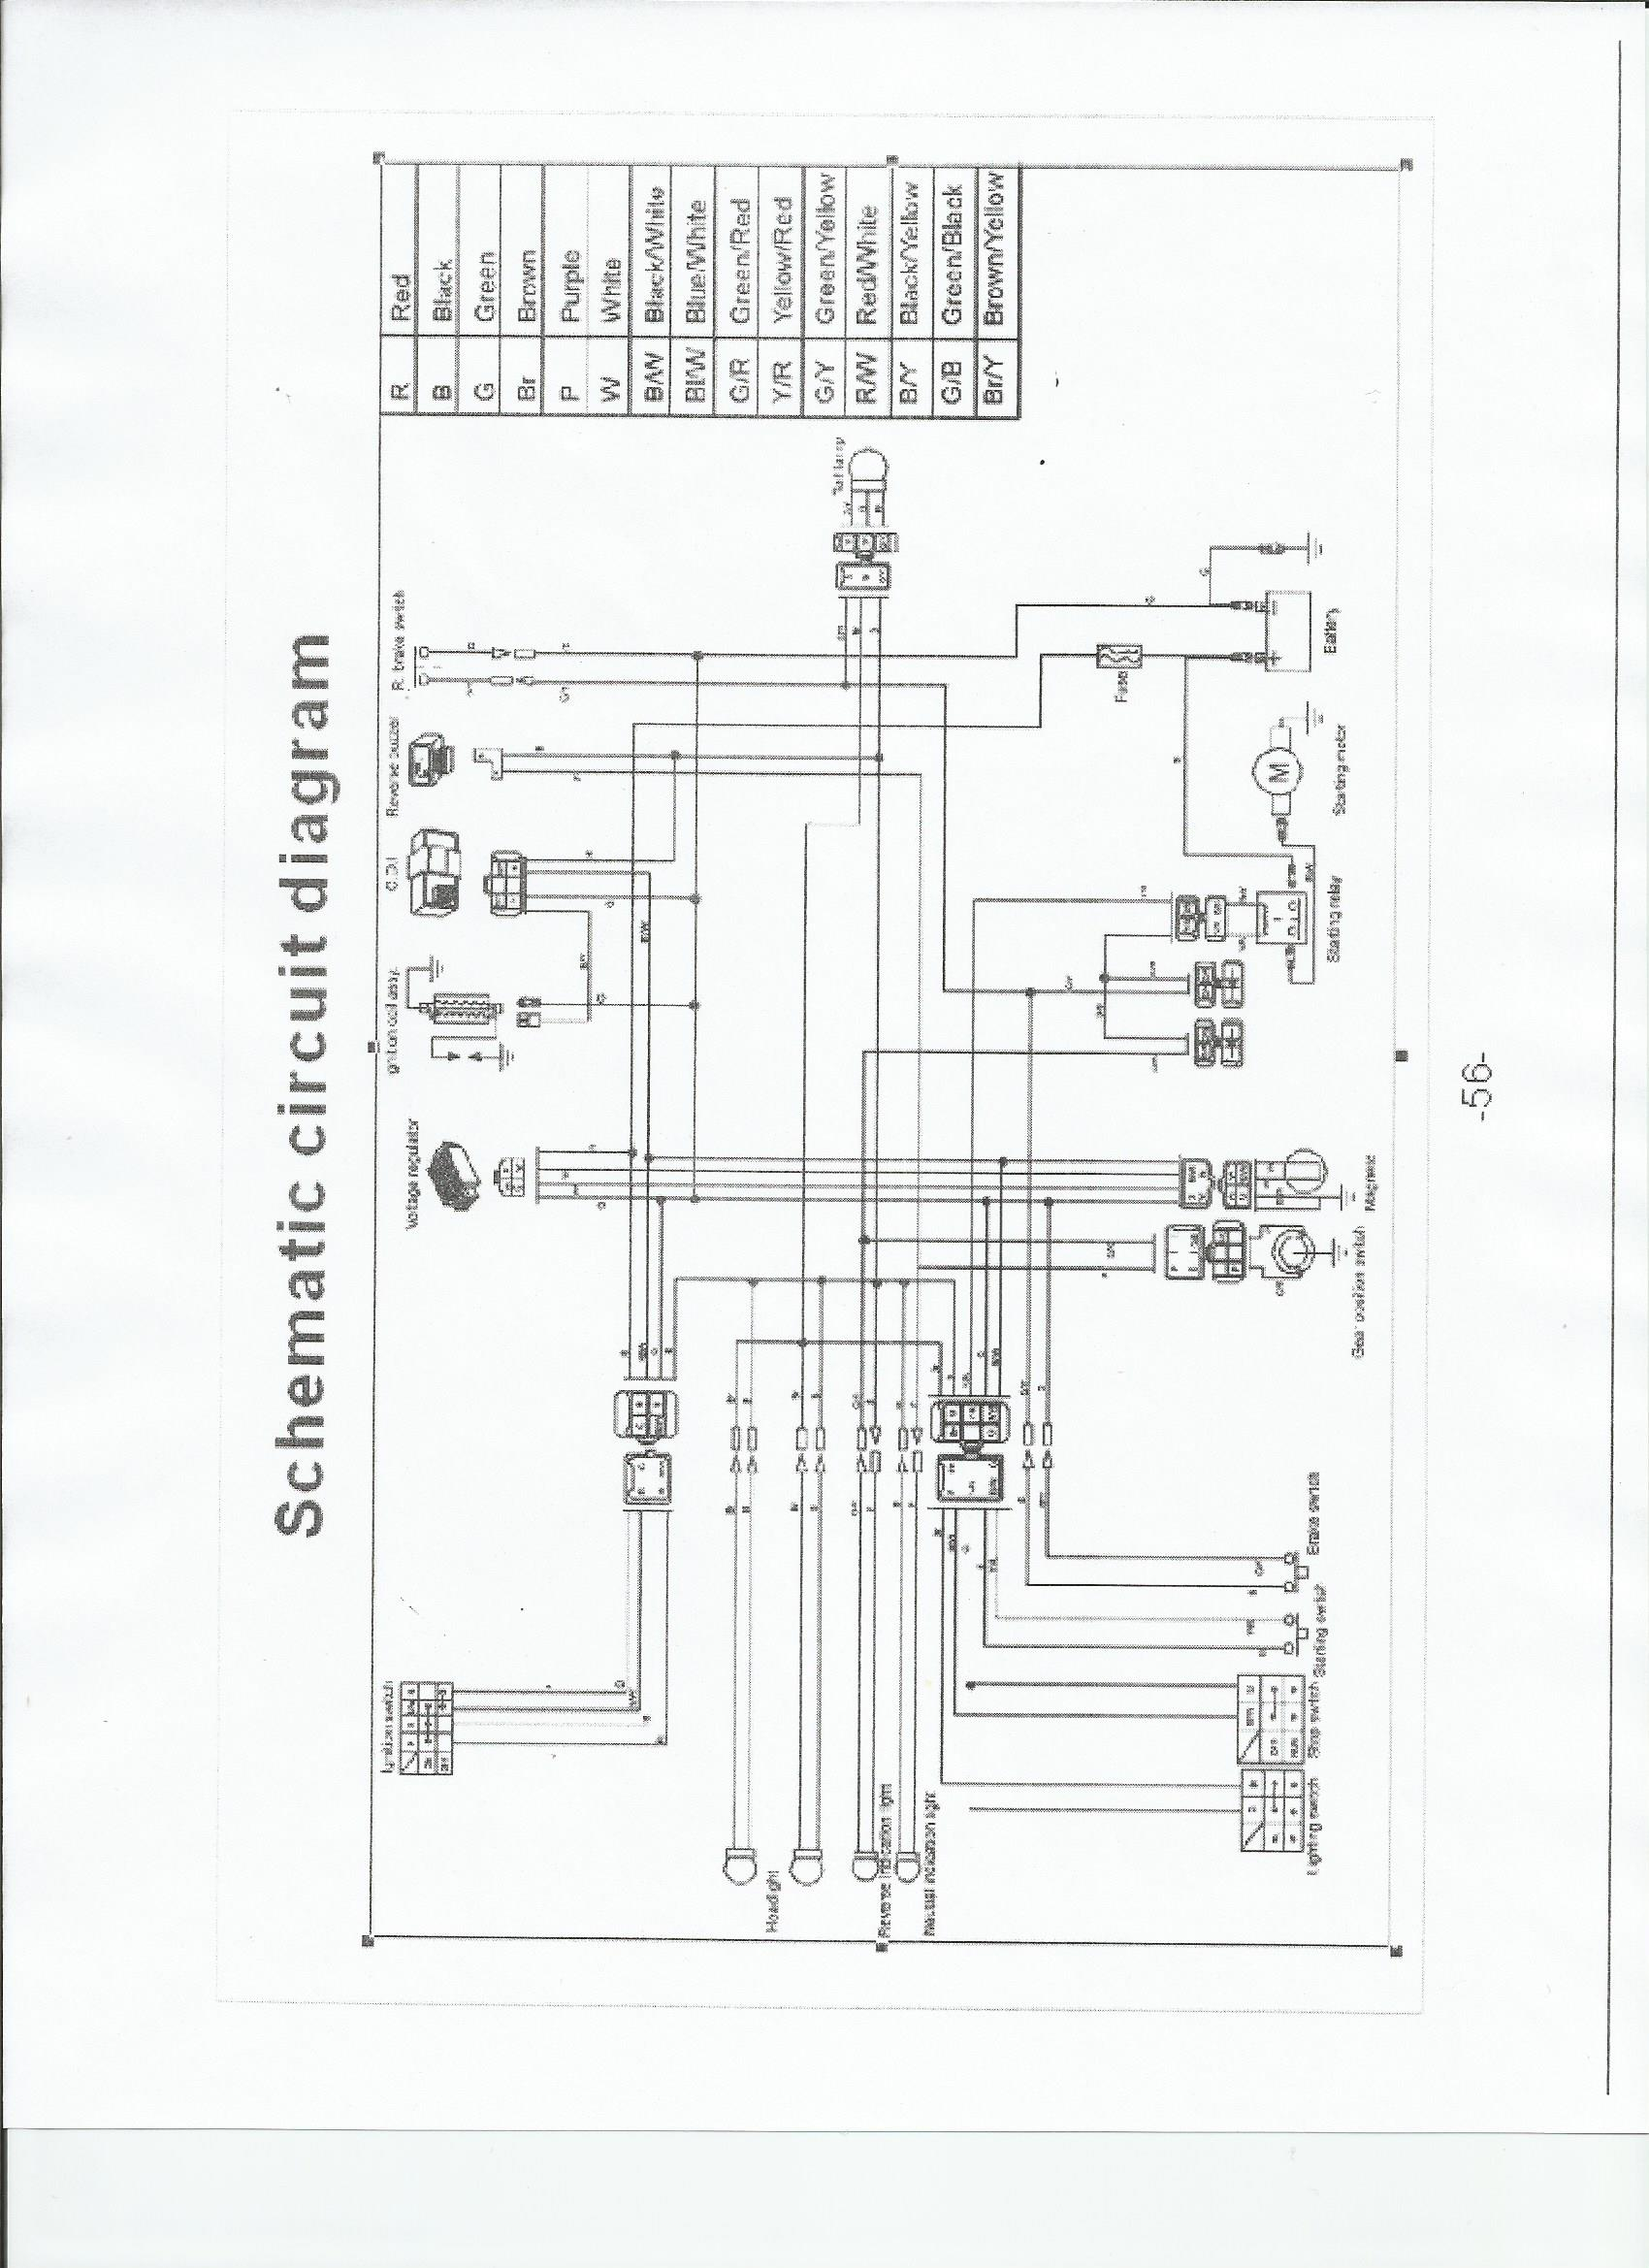 small resolution of 125cc starter diagram wiring diagram z4125cc starter diagram online wiring diagram ford starter solenoid wiring diagram